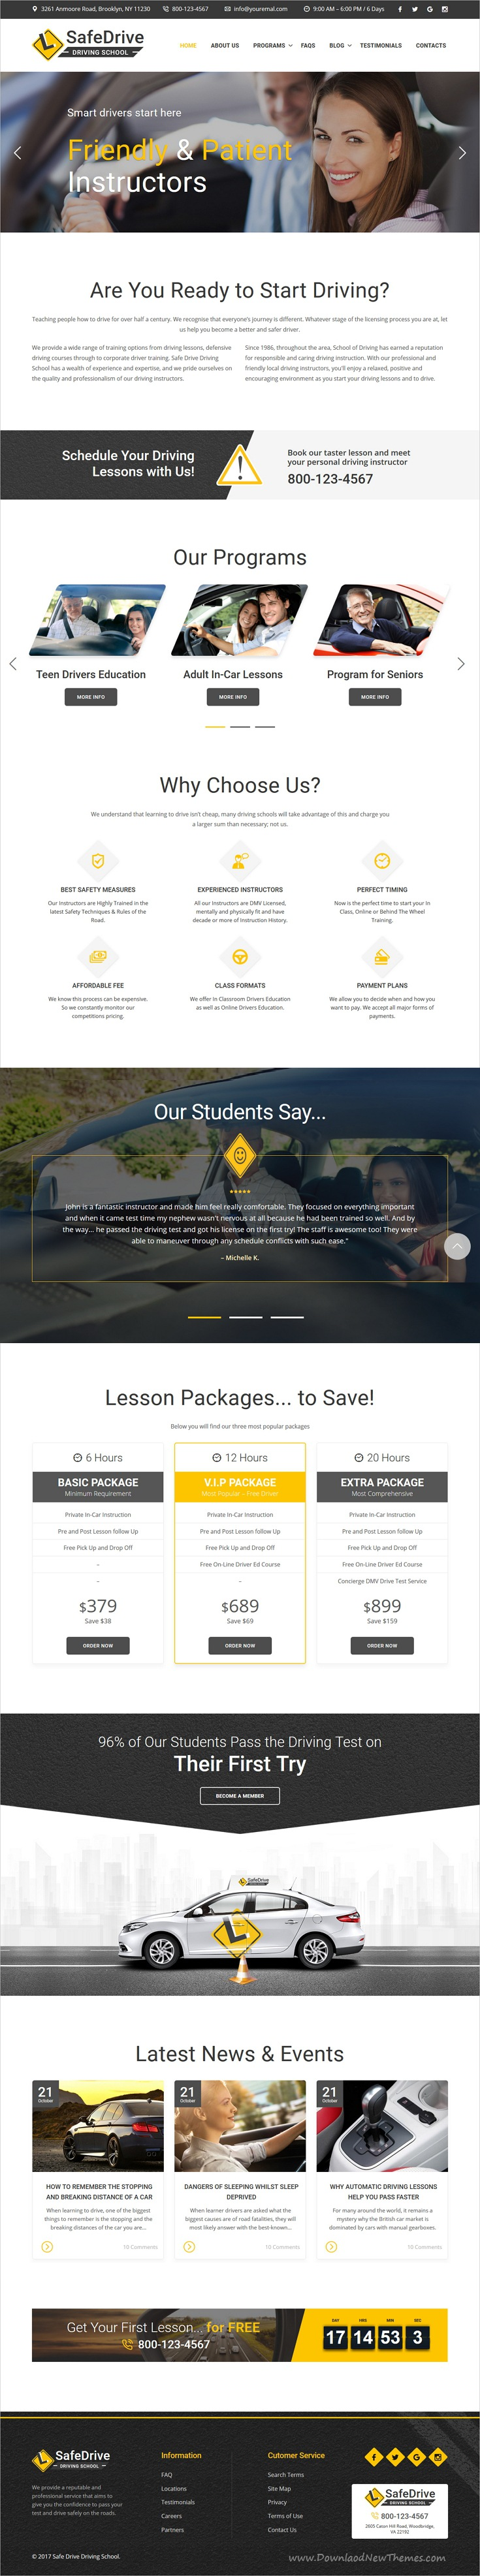 Safe Drive Is Clean And Modern Design Responsive Bootstrap Template